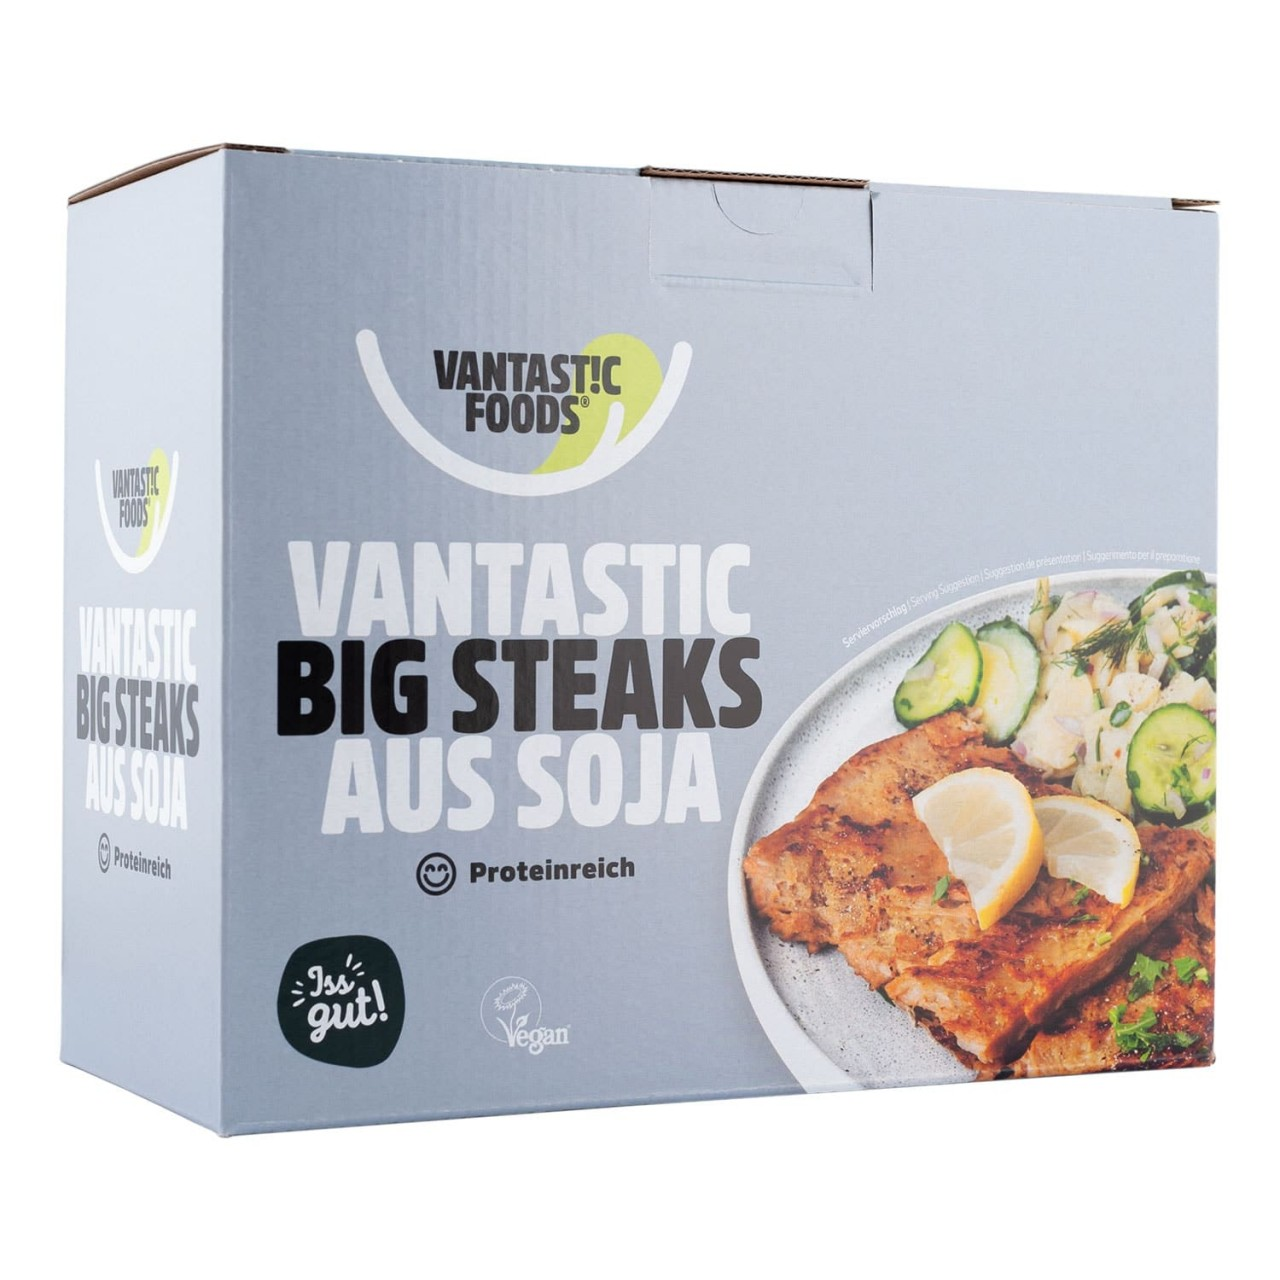 Vantastic foods VANTASTIC BIG STEAKS aus Soja, 500g von Vantastic foods